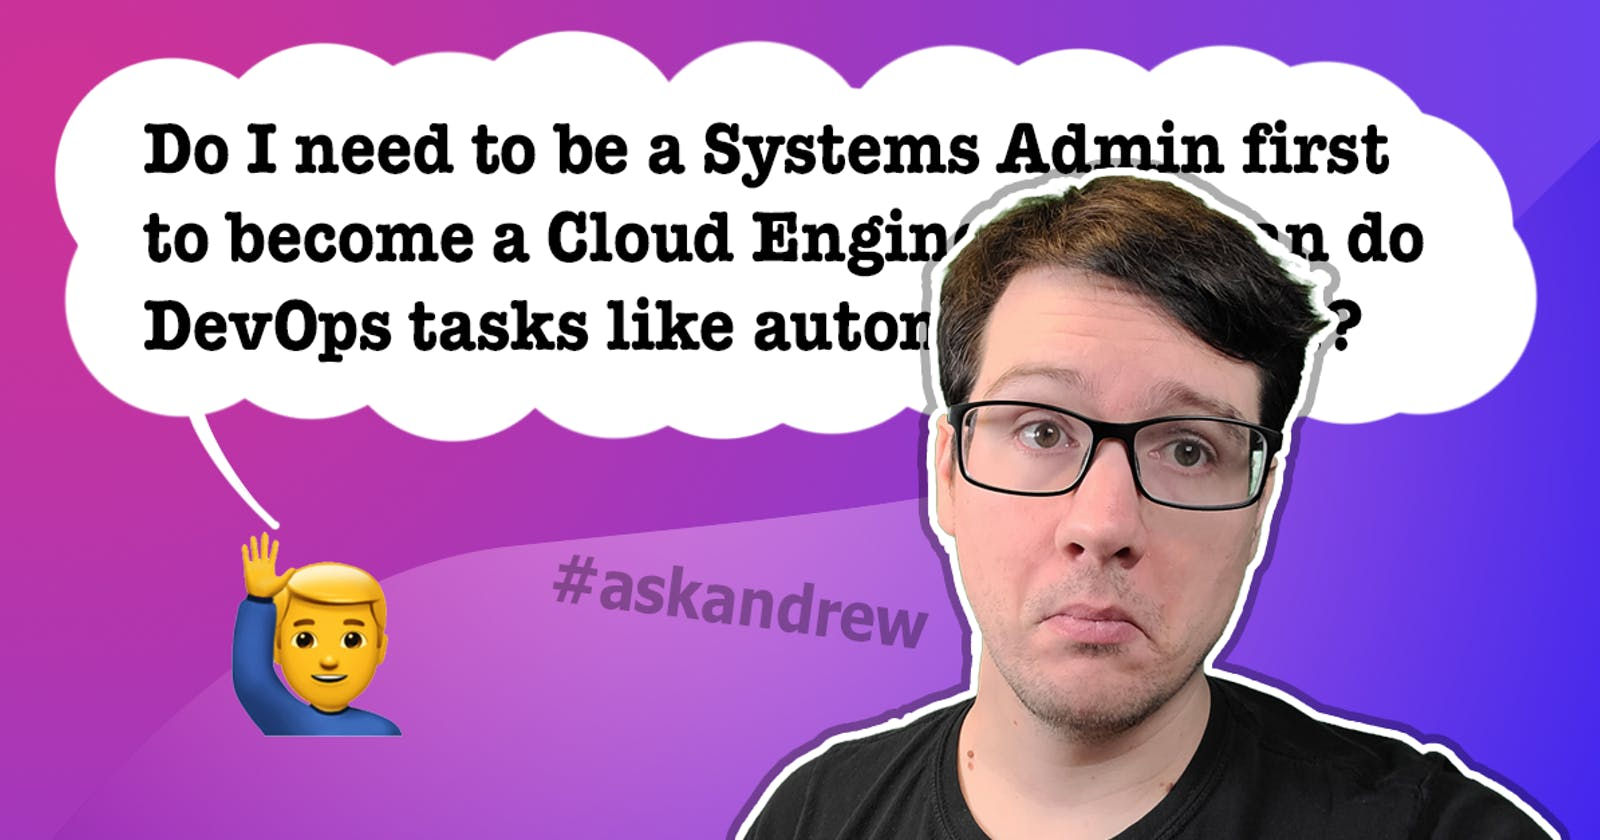 Is it recommended to first be a system admin in a user support role before becoming Cloud engineer in Azure/AWS GCP?